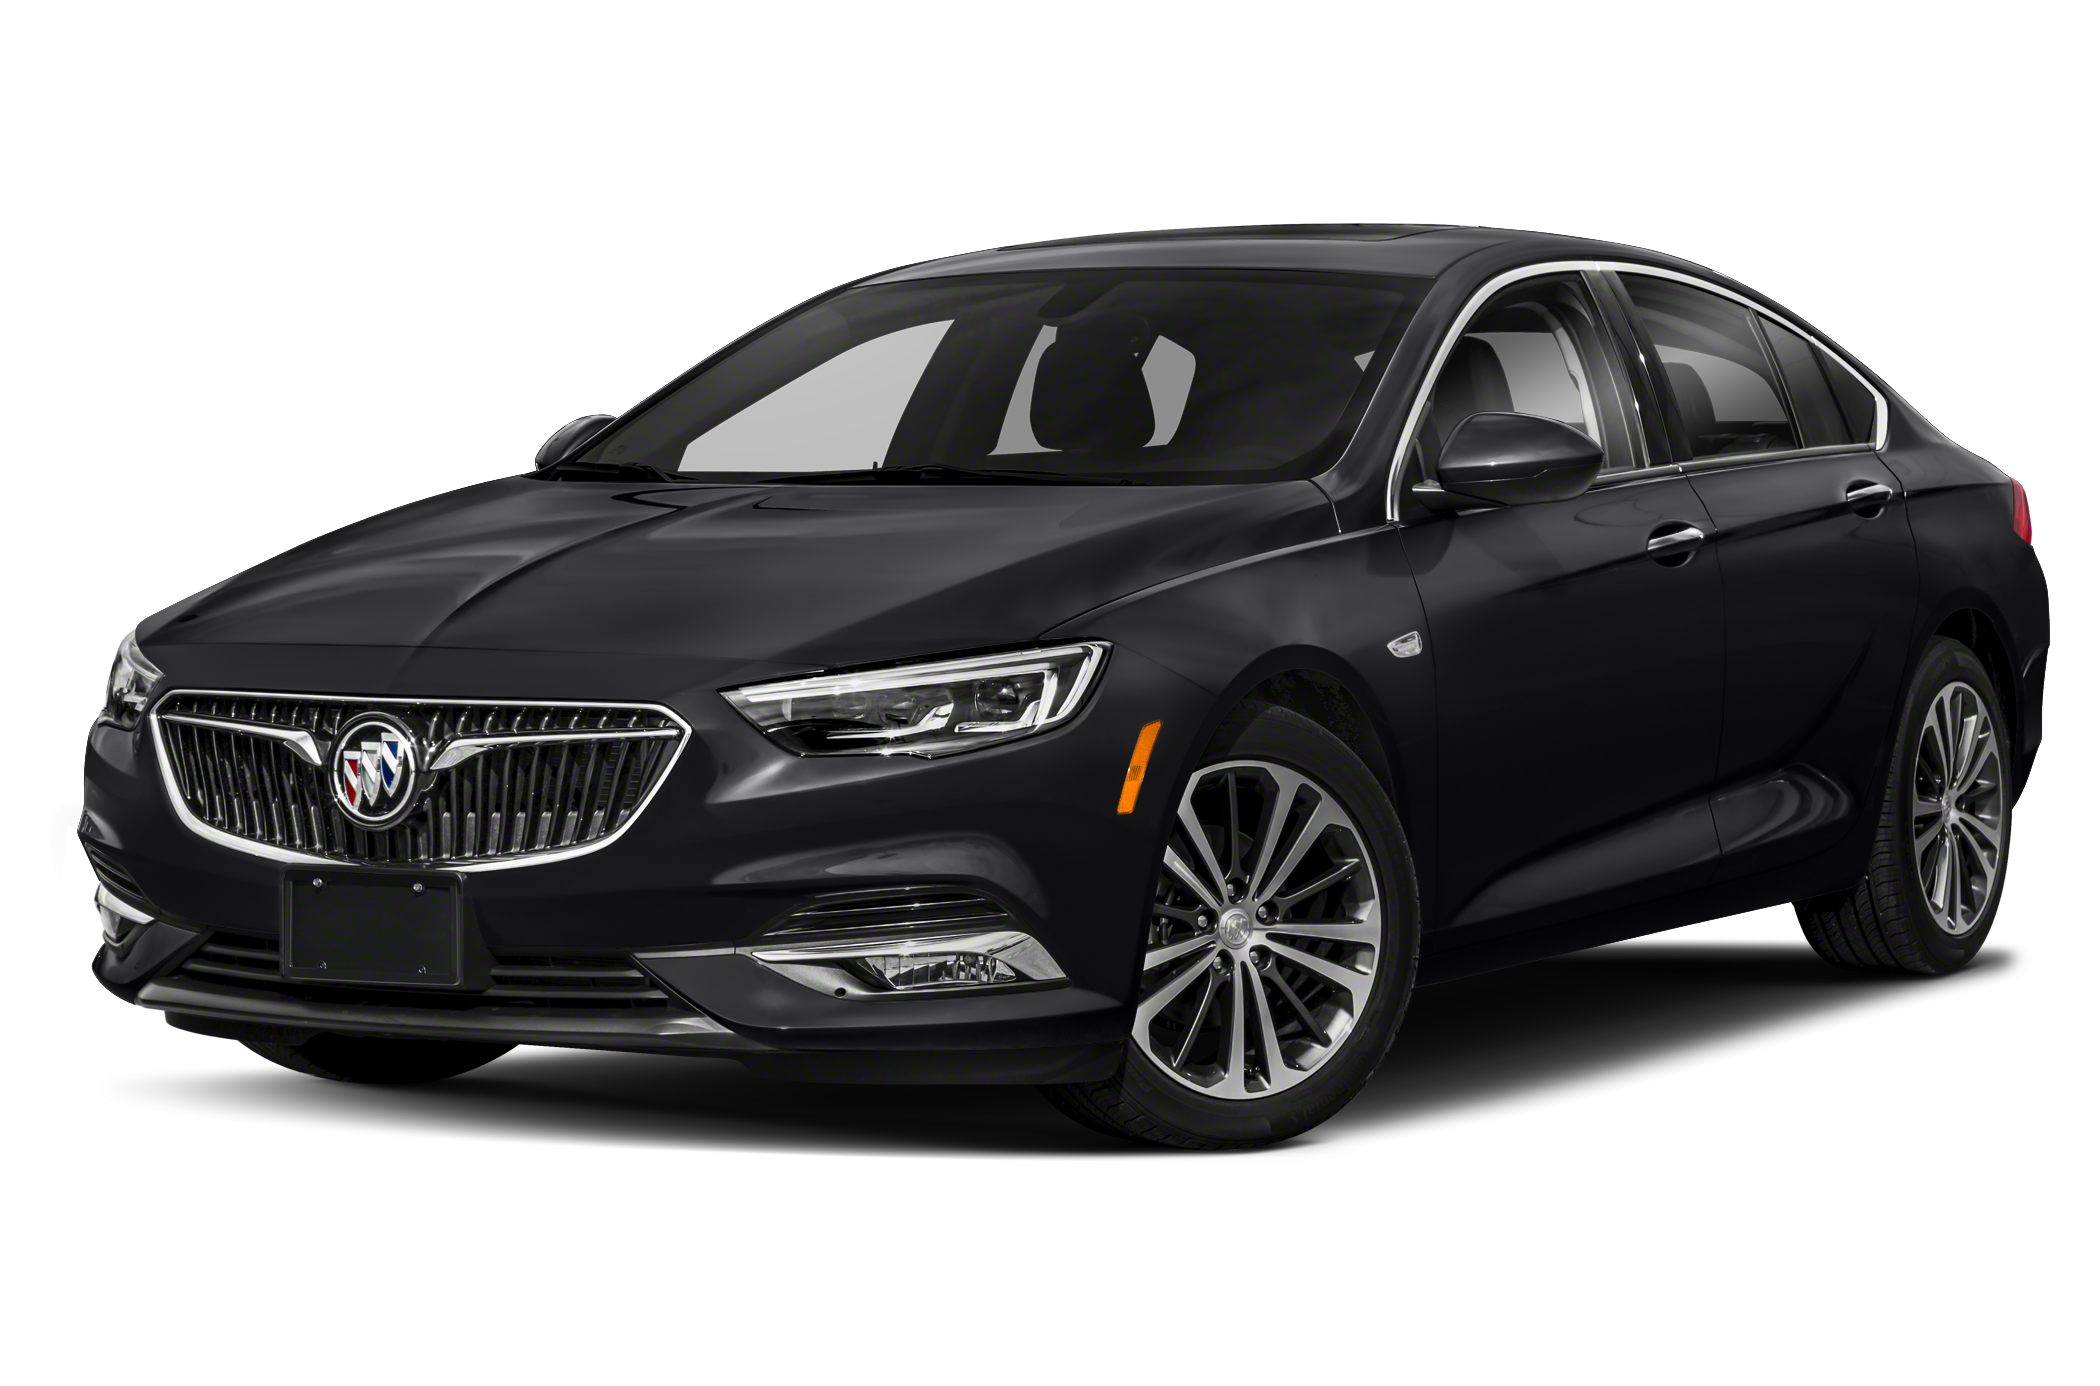 2018 Buick Regal Sportback Preferred If youre shopping for a quality vehicle with perks such as a